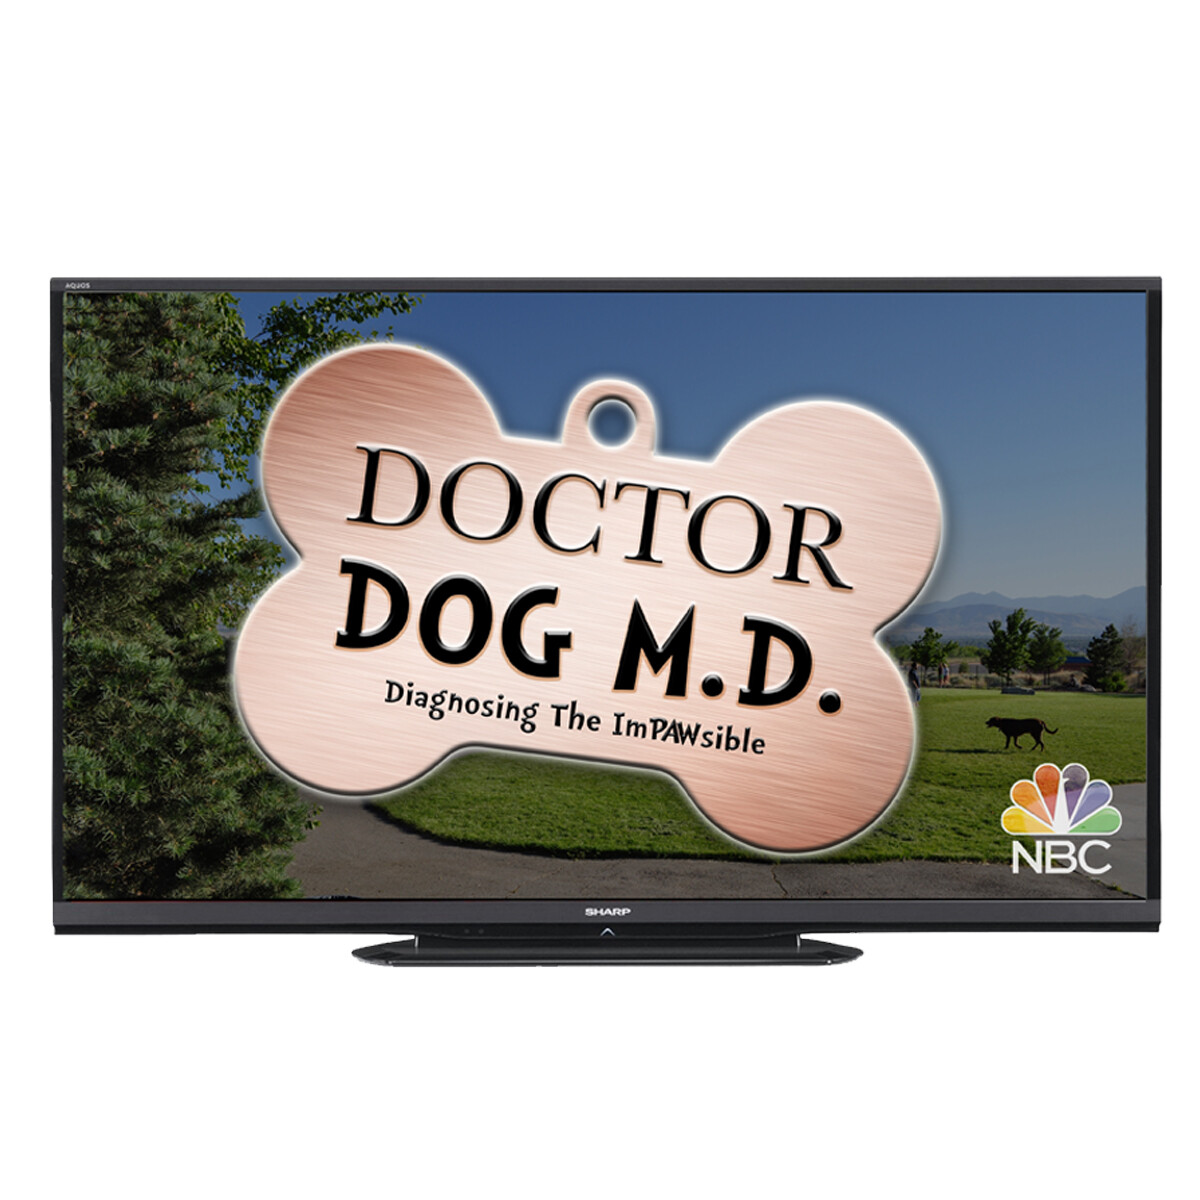 Doctor Dog TV Show Intro Screen